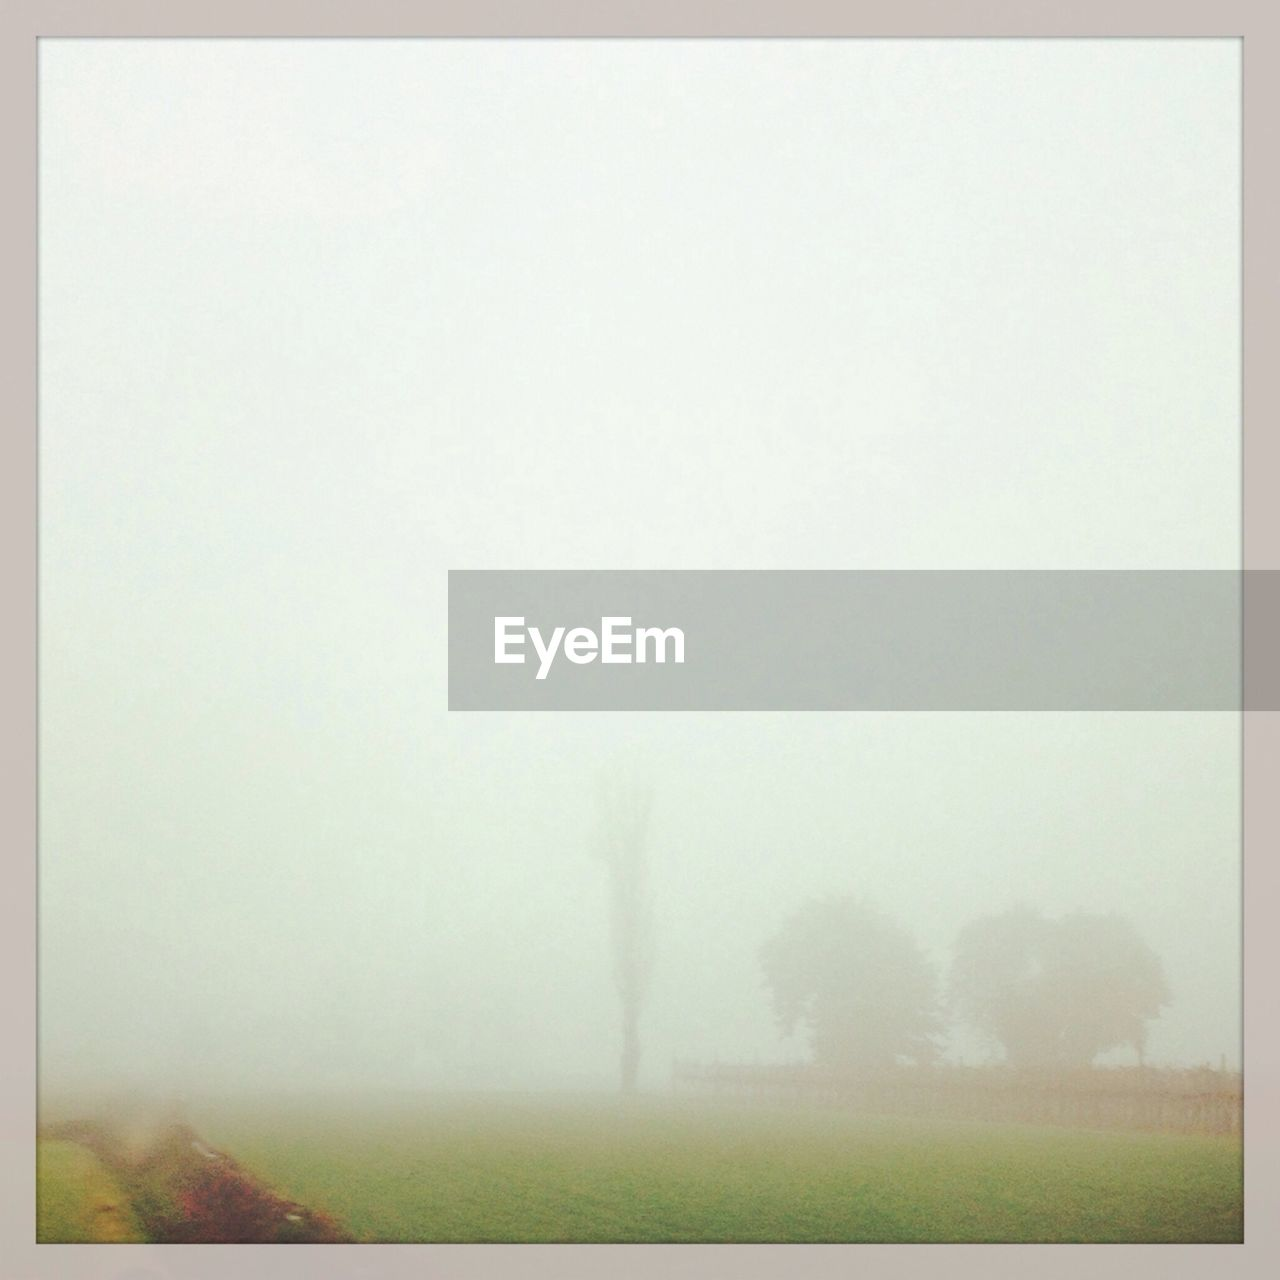 Scenic view of field during foggy weather at dusk